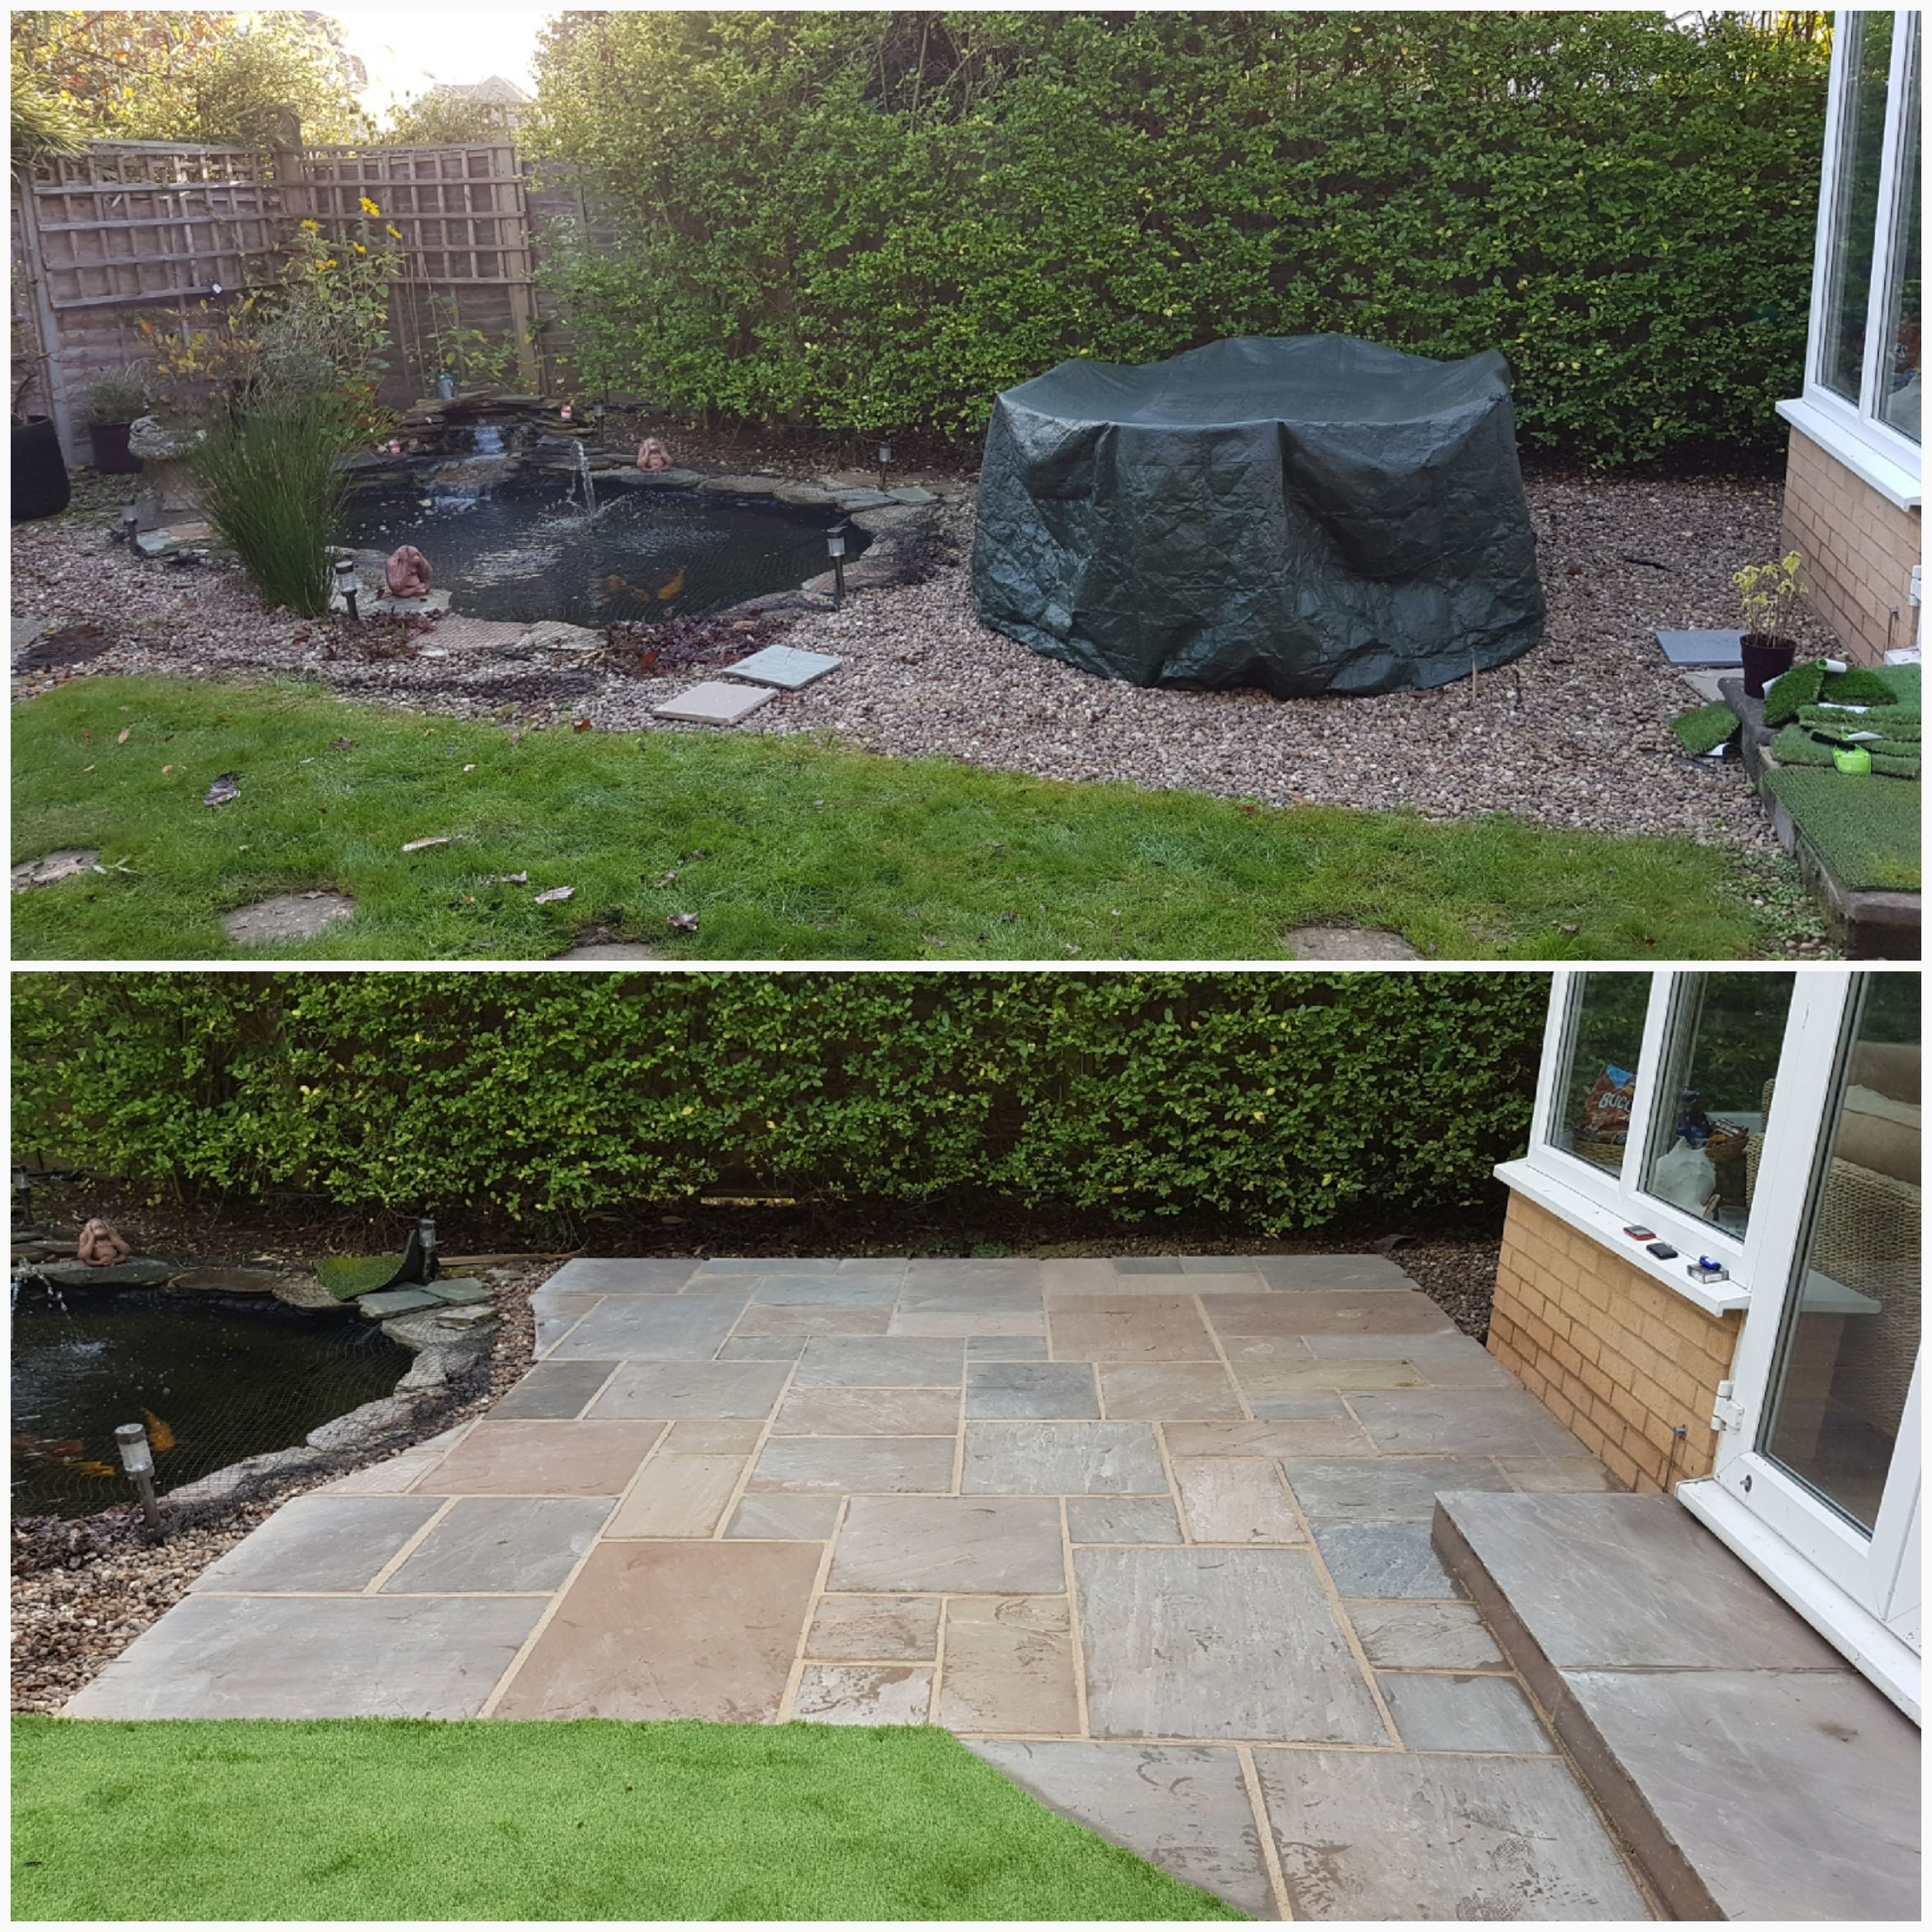 Autum brown sandstone patio and step